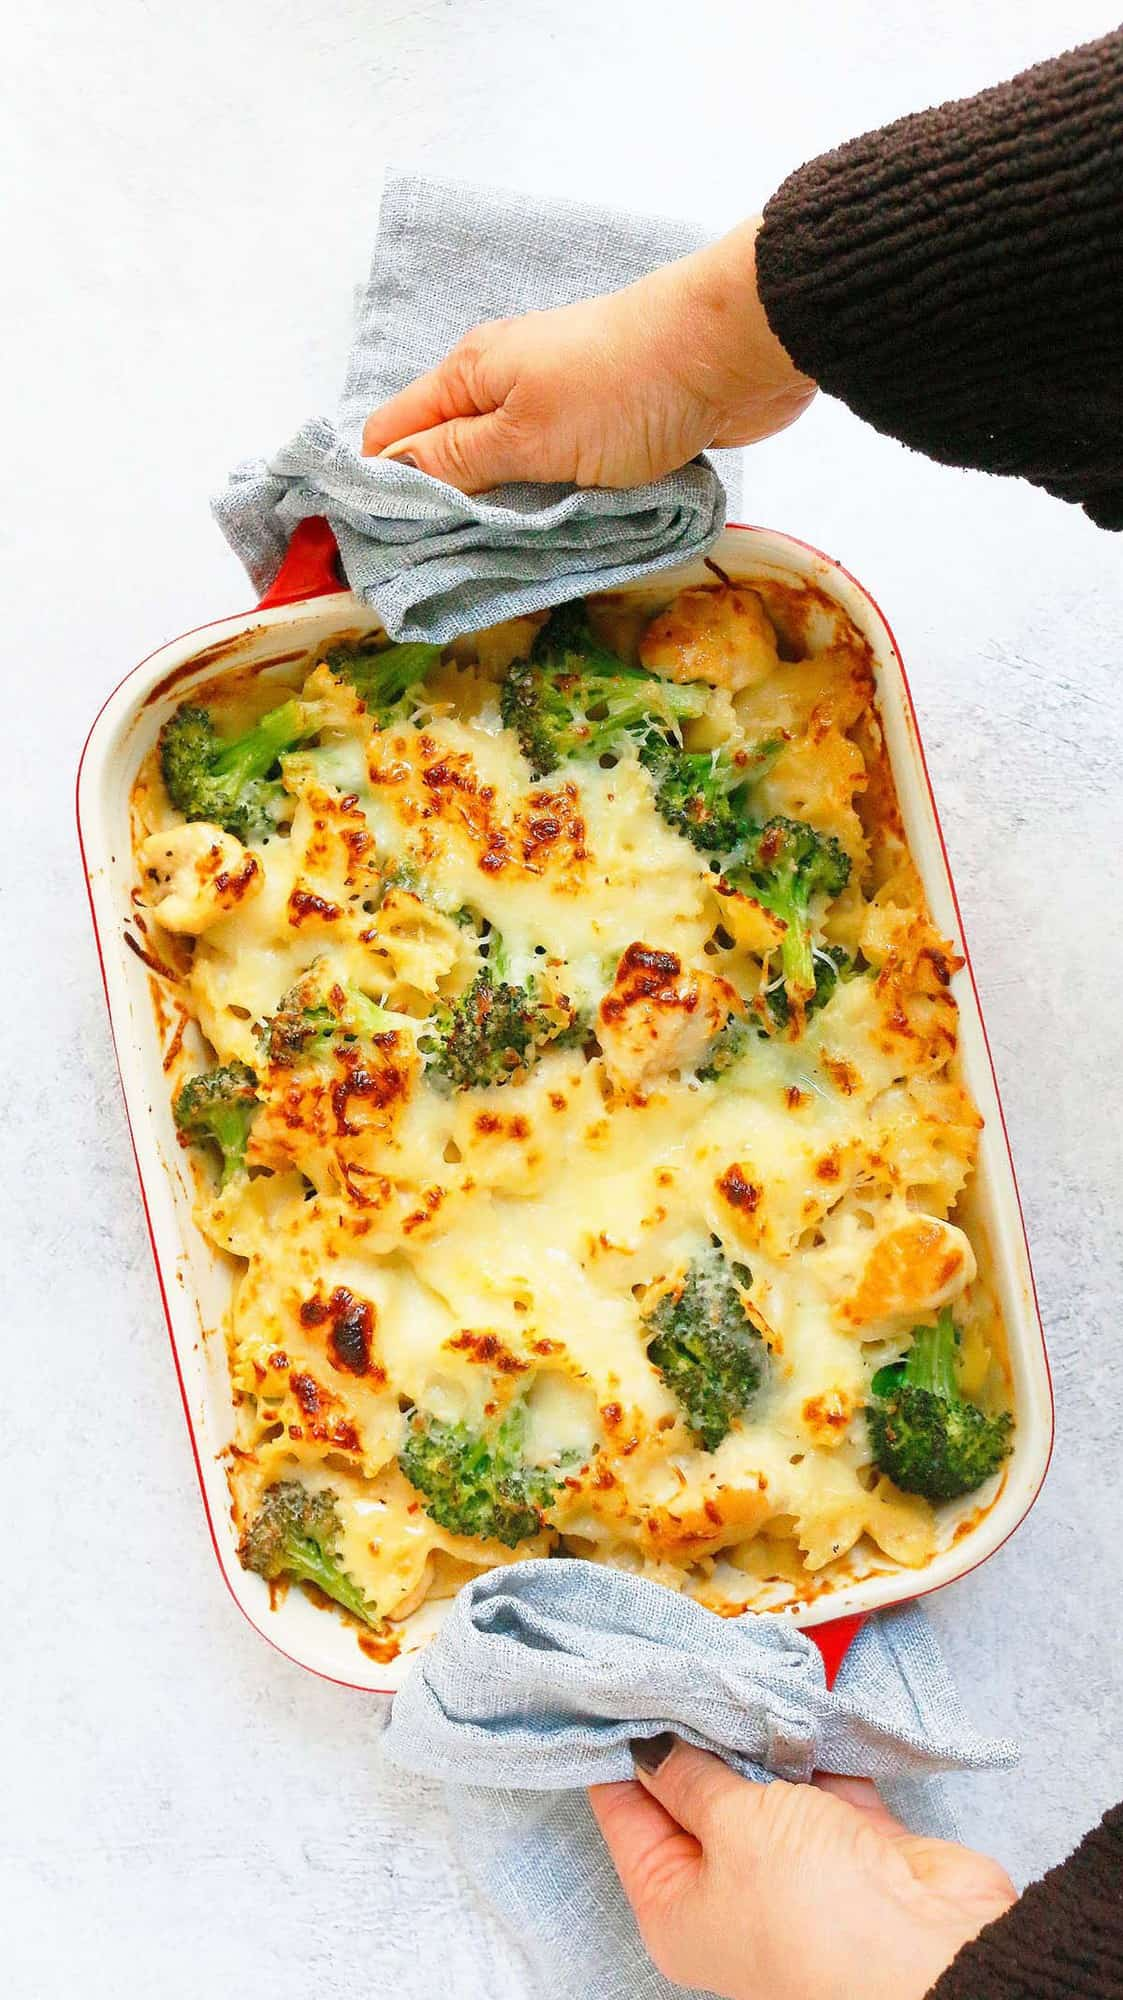 two hands holding a hot chicken pasta broccoli bake in a red pan with grey towels.